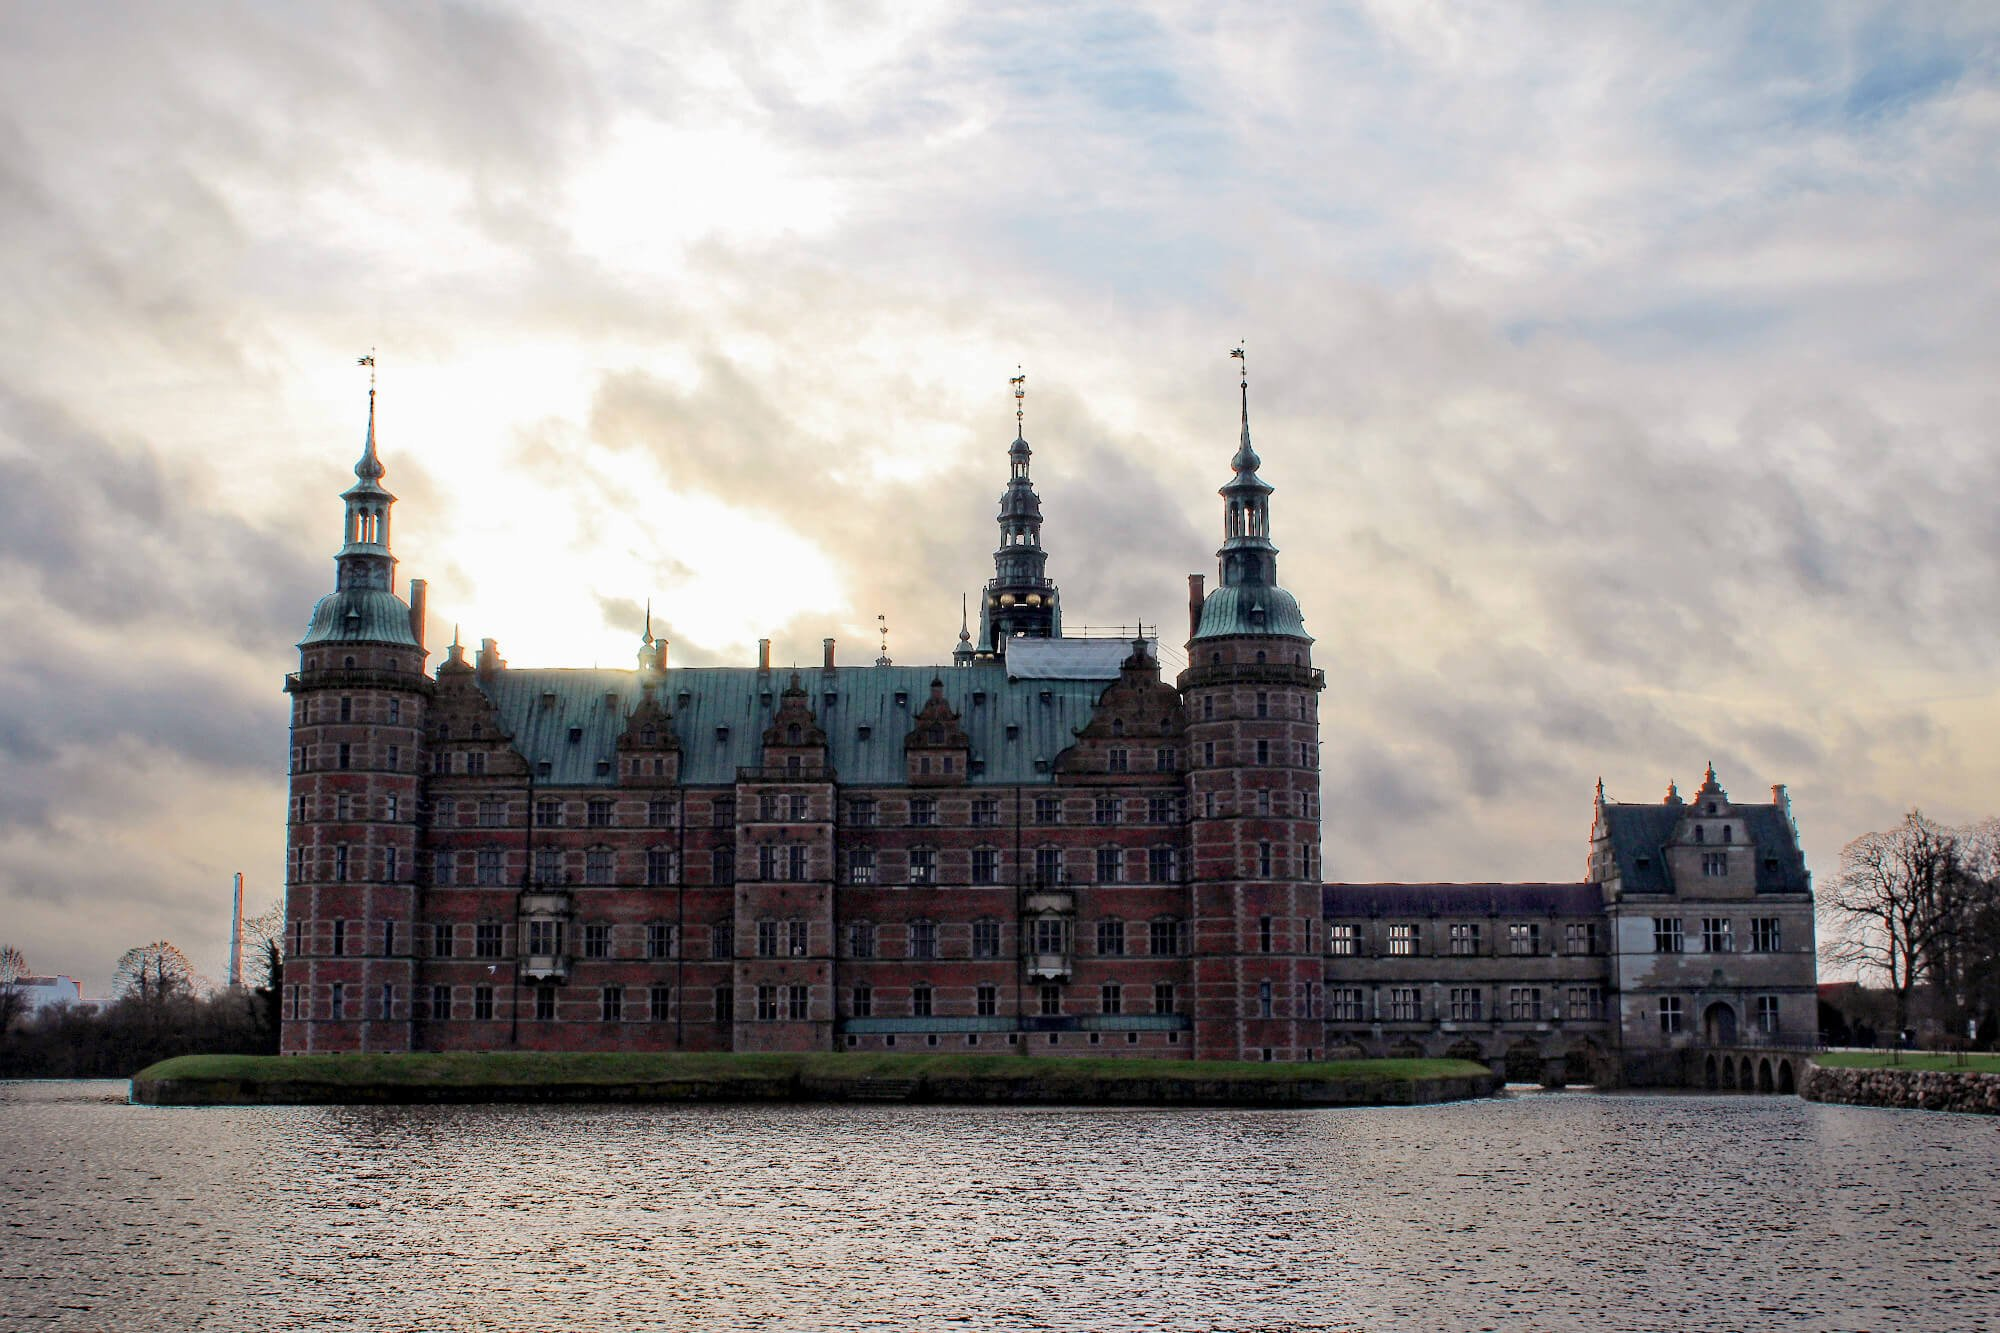 The museum of national history at frederiksborg castle copenhagen - Fairytale Frederiksborg Castle Outside Of Copenhagen Denmark In The Winter